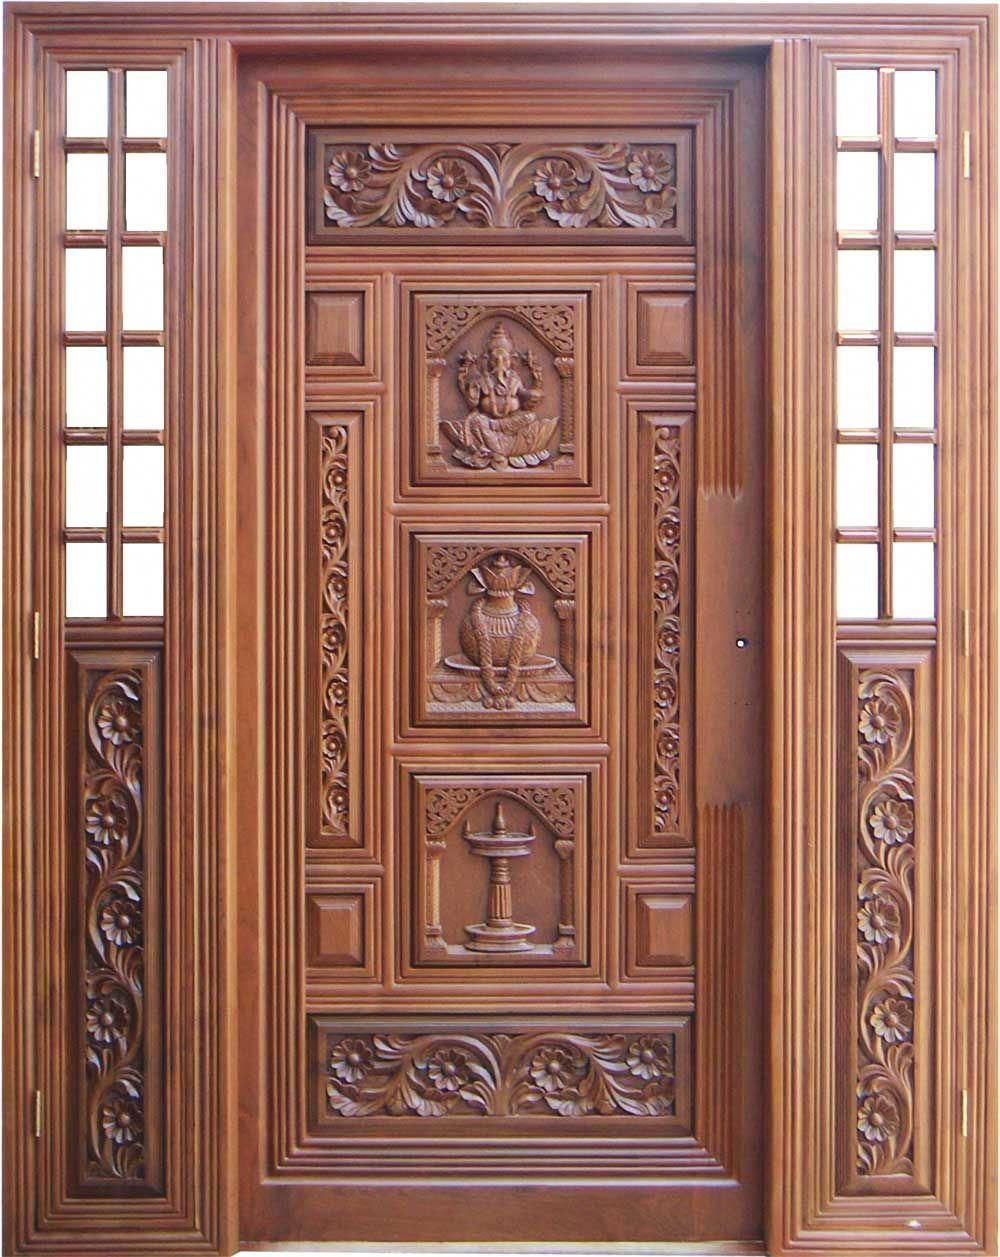 Teak Wood Main Door Designs In 2020 Wooden Door Design Door Design Wood Wooden Main Door Design